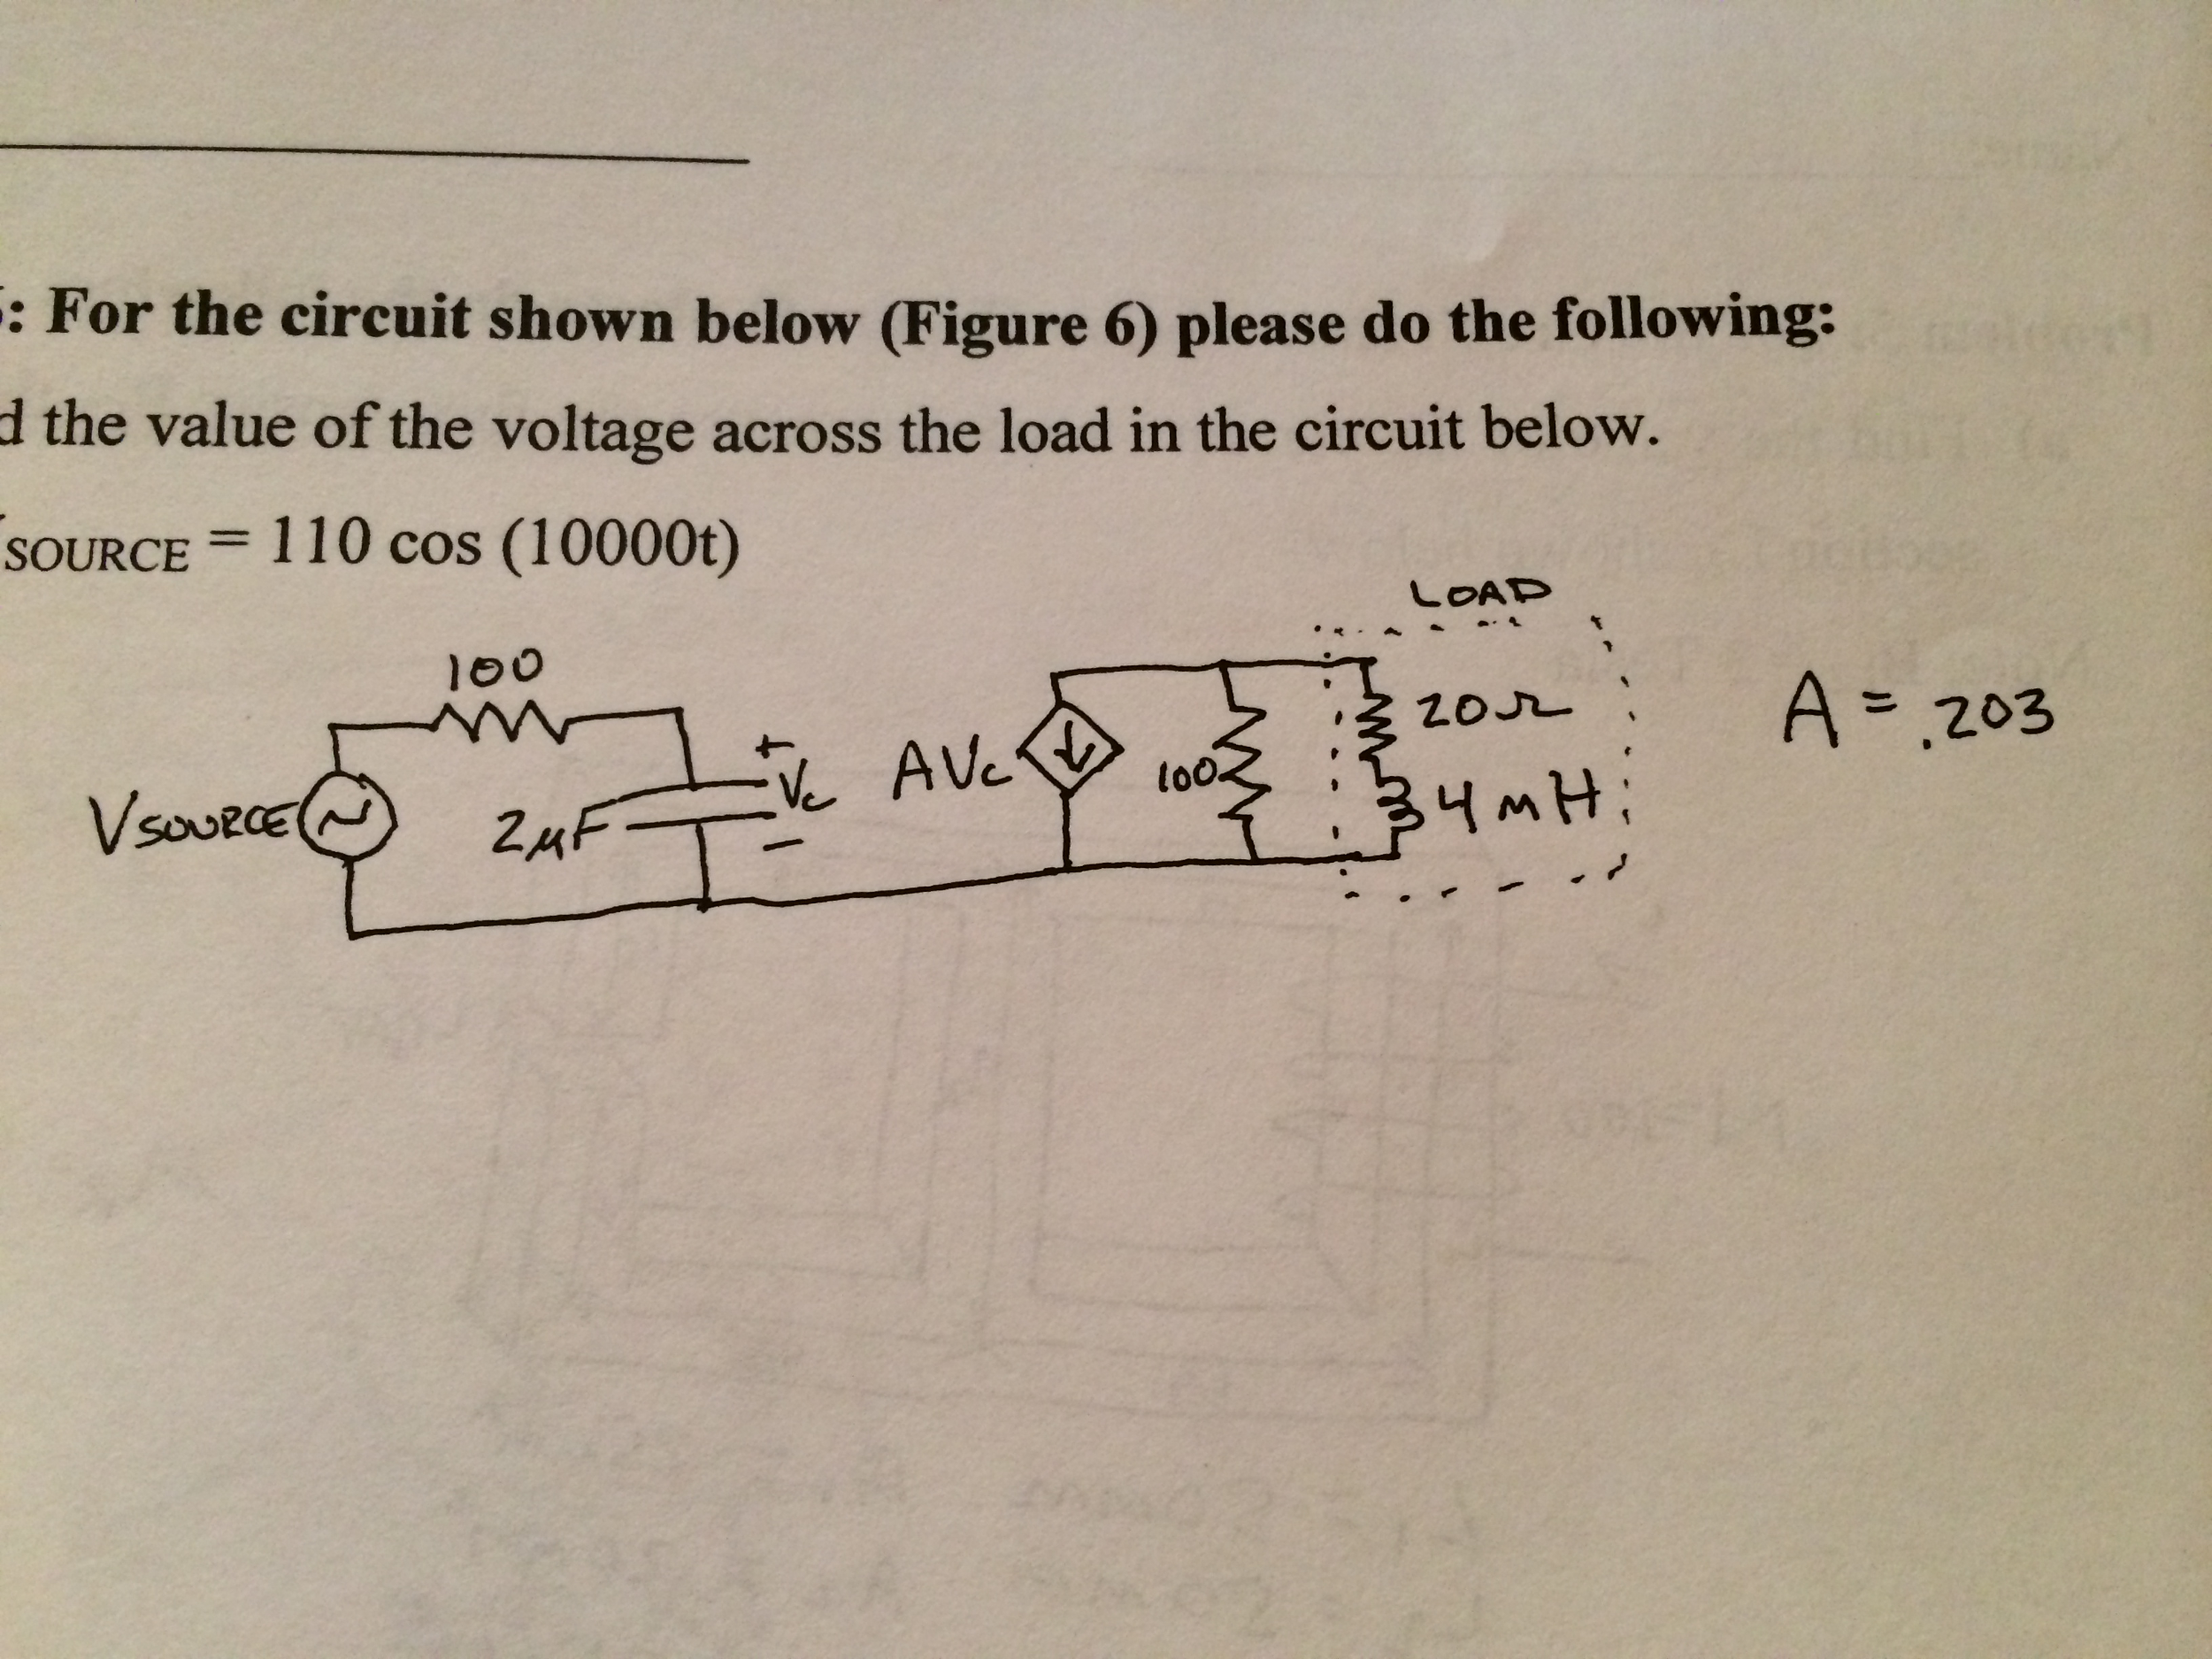 d the value of the voltage across the load in the